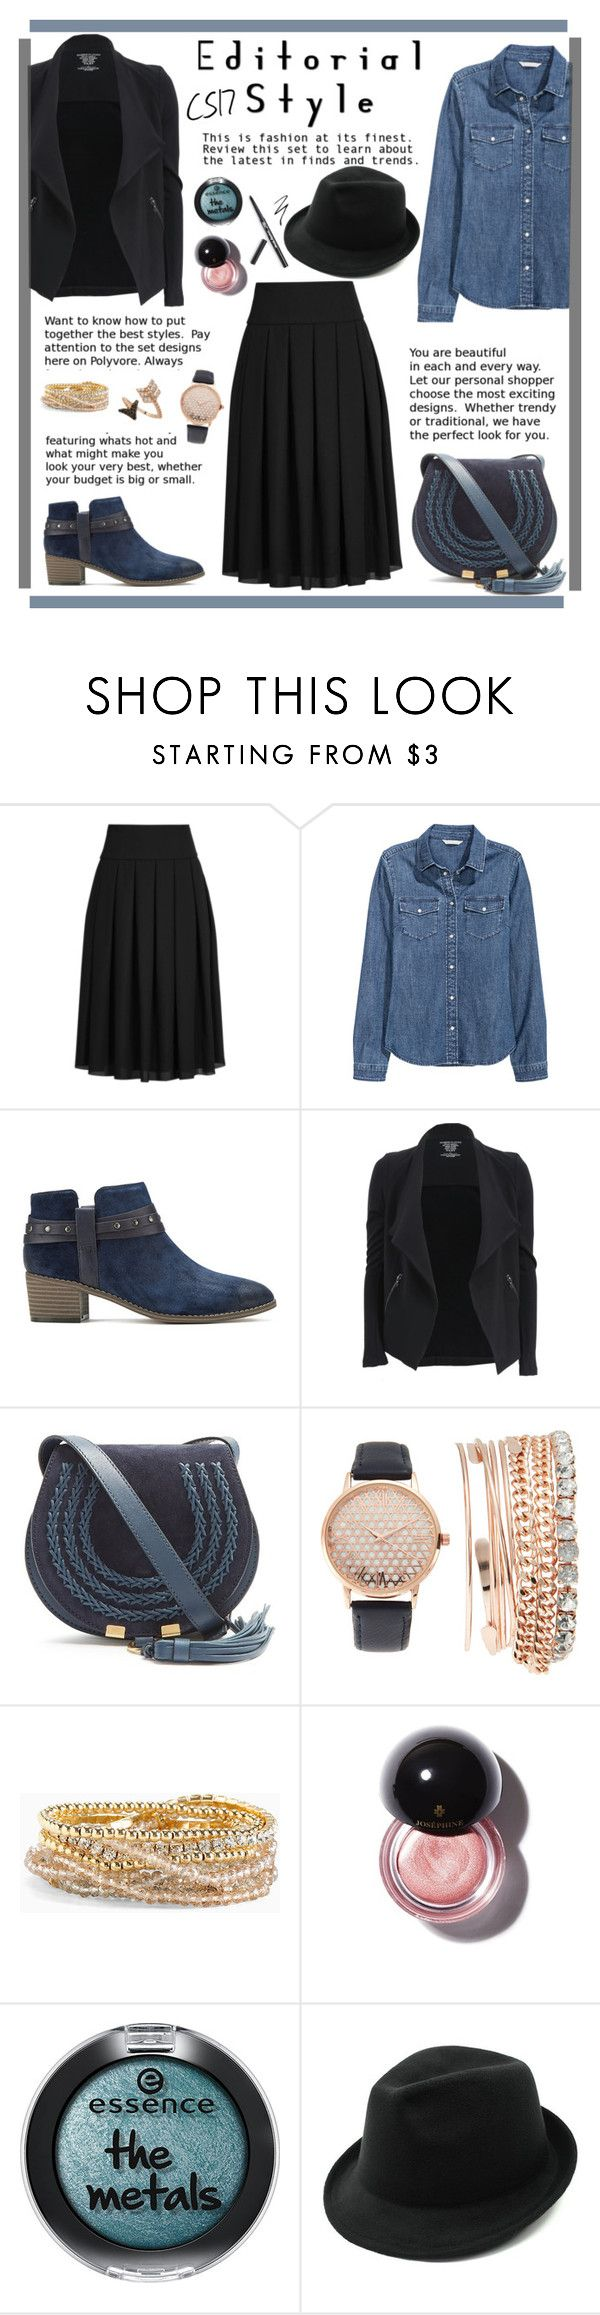 """""""Inspirational Look (January 18th)"""" by shiningstars17 ❤ liked on Polyvore featuring Reiss, H&M, Clarks, Majestic Filatures, Chloé, Jessica Carlyle, Torrid and Bee Goddess"""